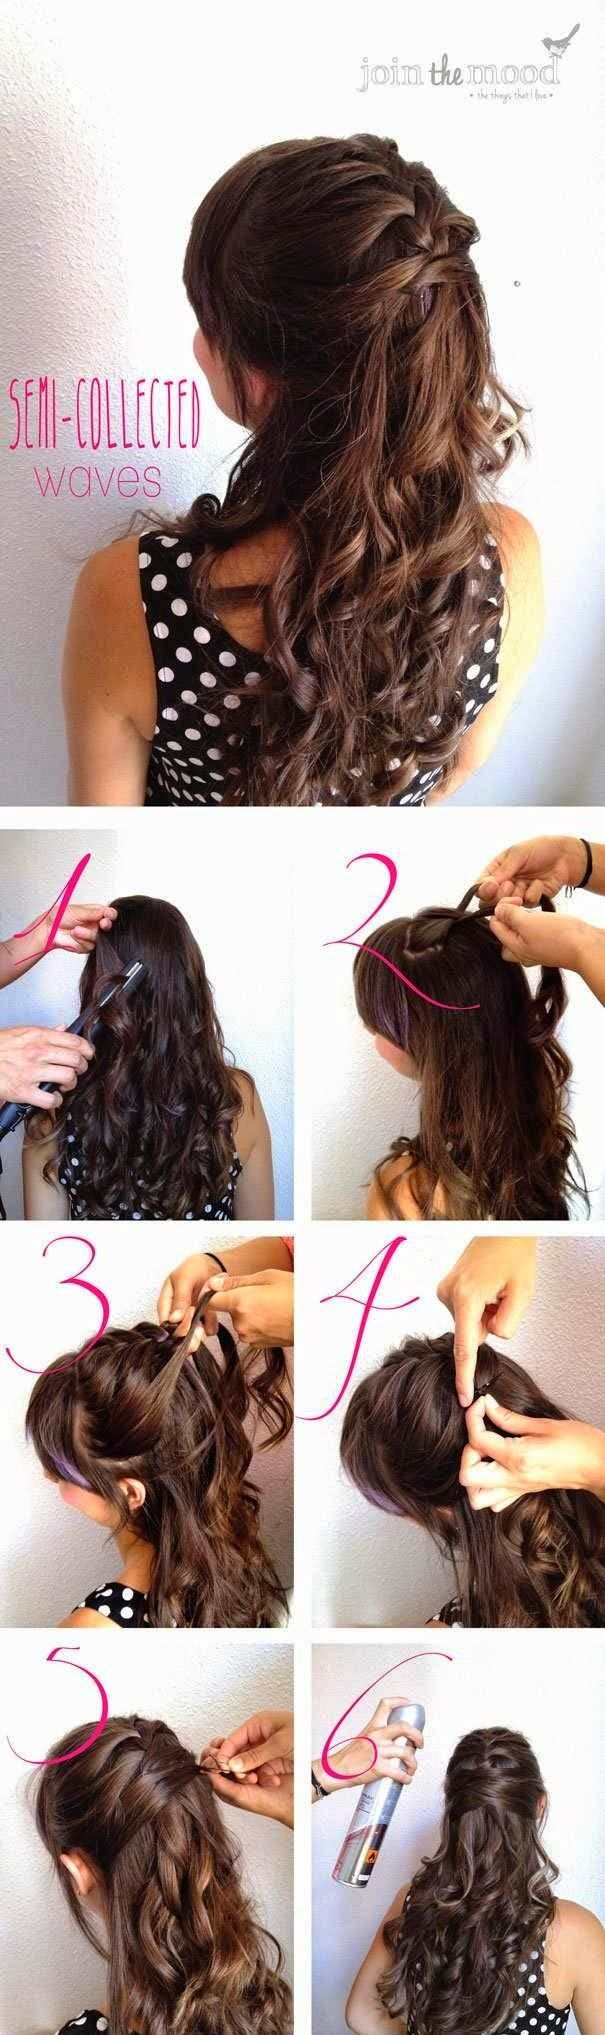 Fashionable Half Up Half Down Hairstyles Hair Tutorials For Women